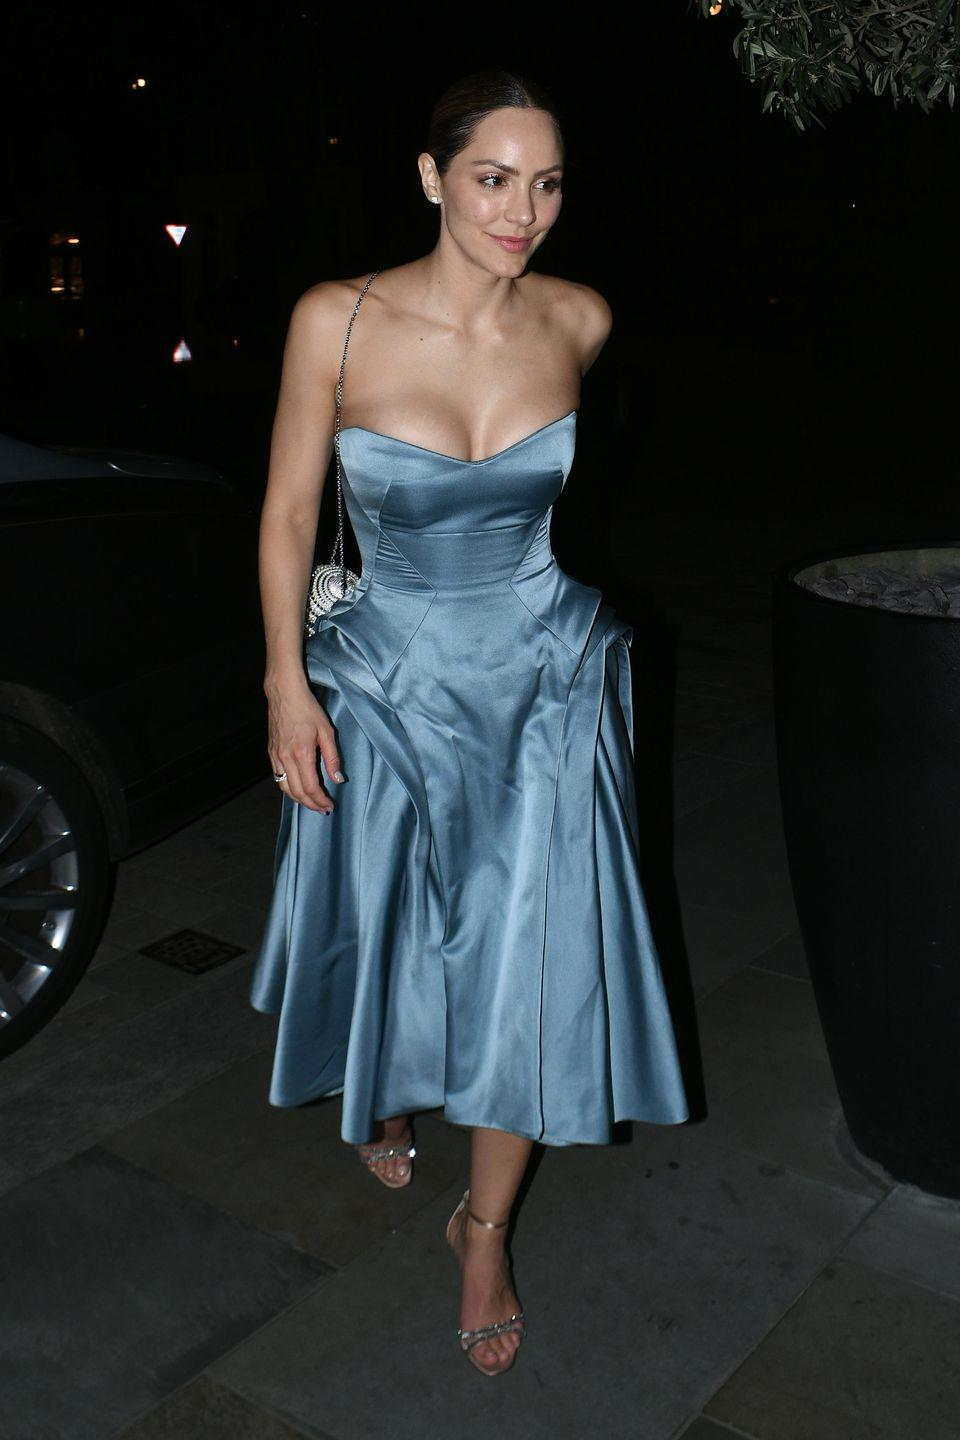 <p>For Broadway star Katharine McPhee's third and final look at her wedding to David Foster she wore a smokey blue satin midi length cocktail dress by Zac Posen where they cut the cake and hit the dance floor. Matching with a sphere crystal embellished clutch and sandals. </p>